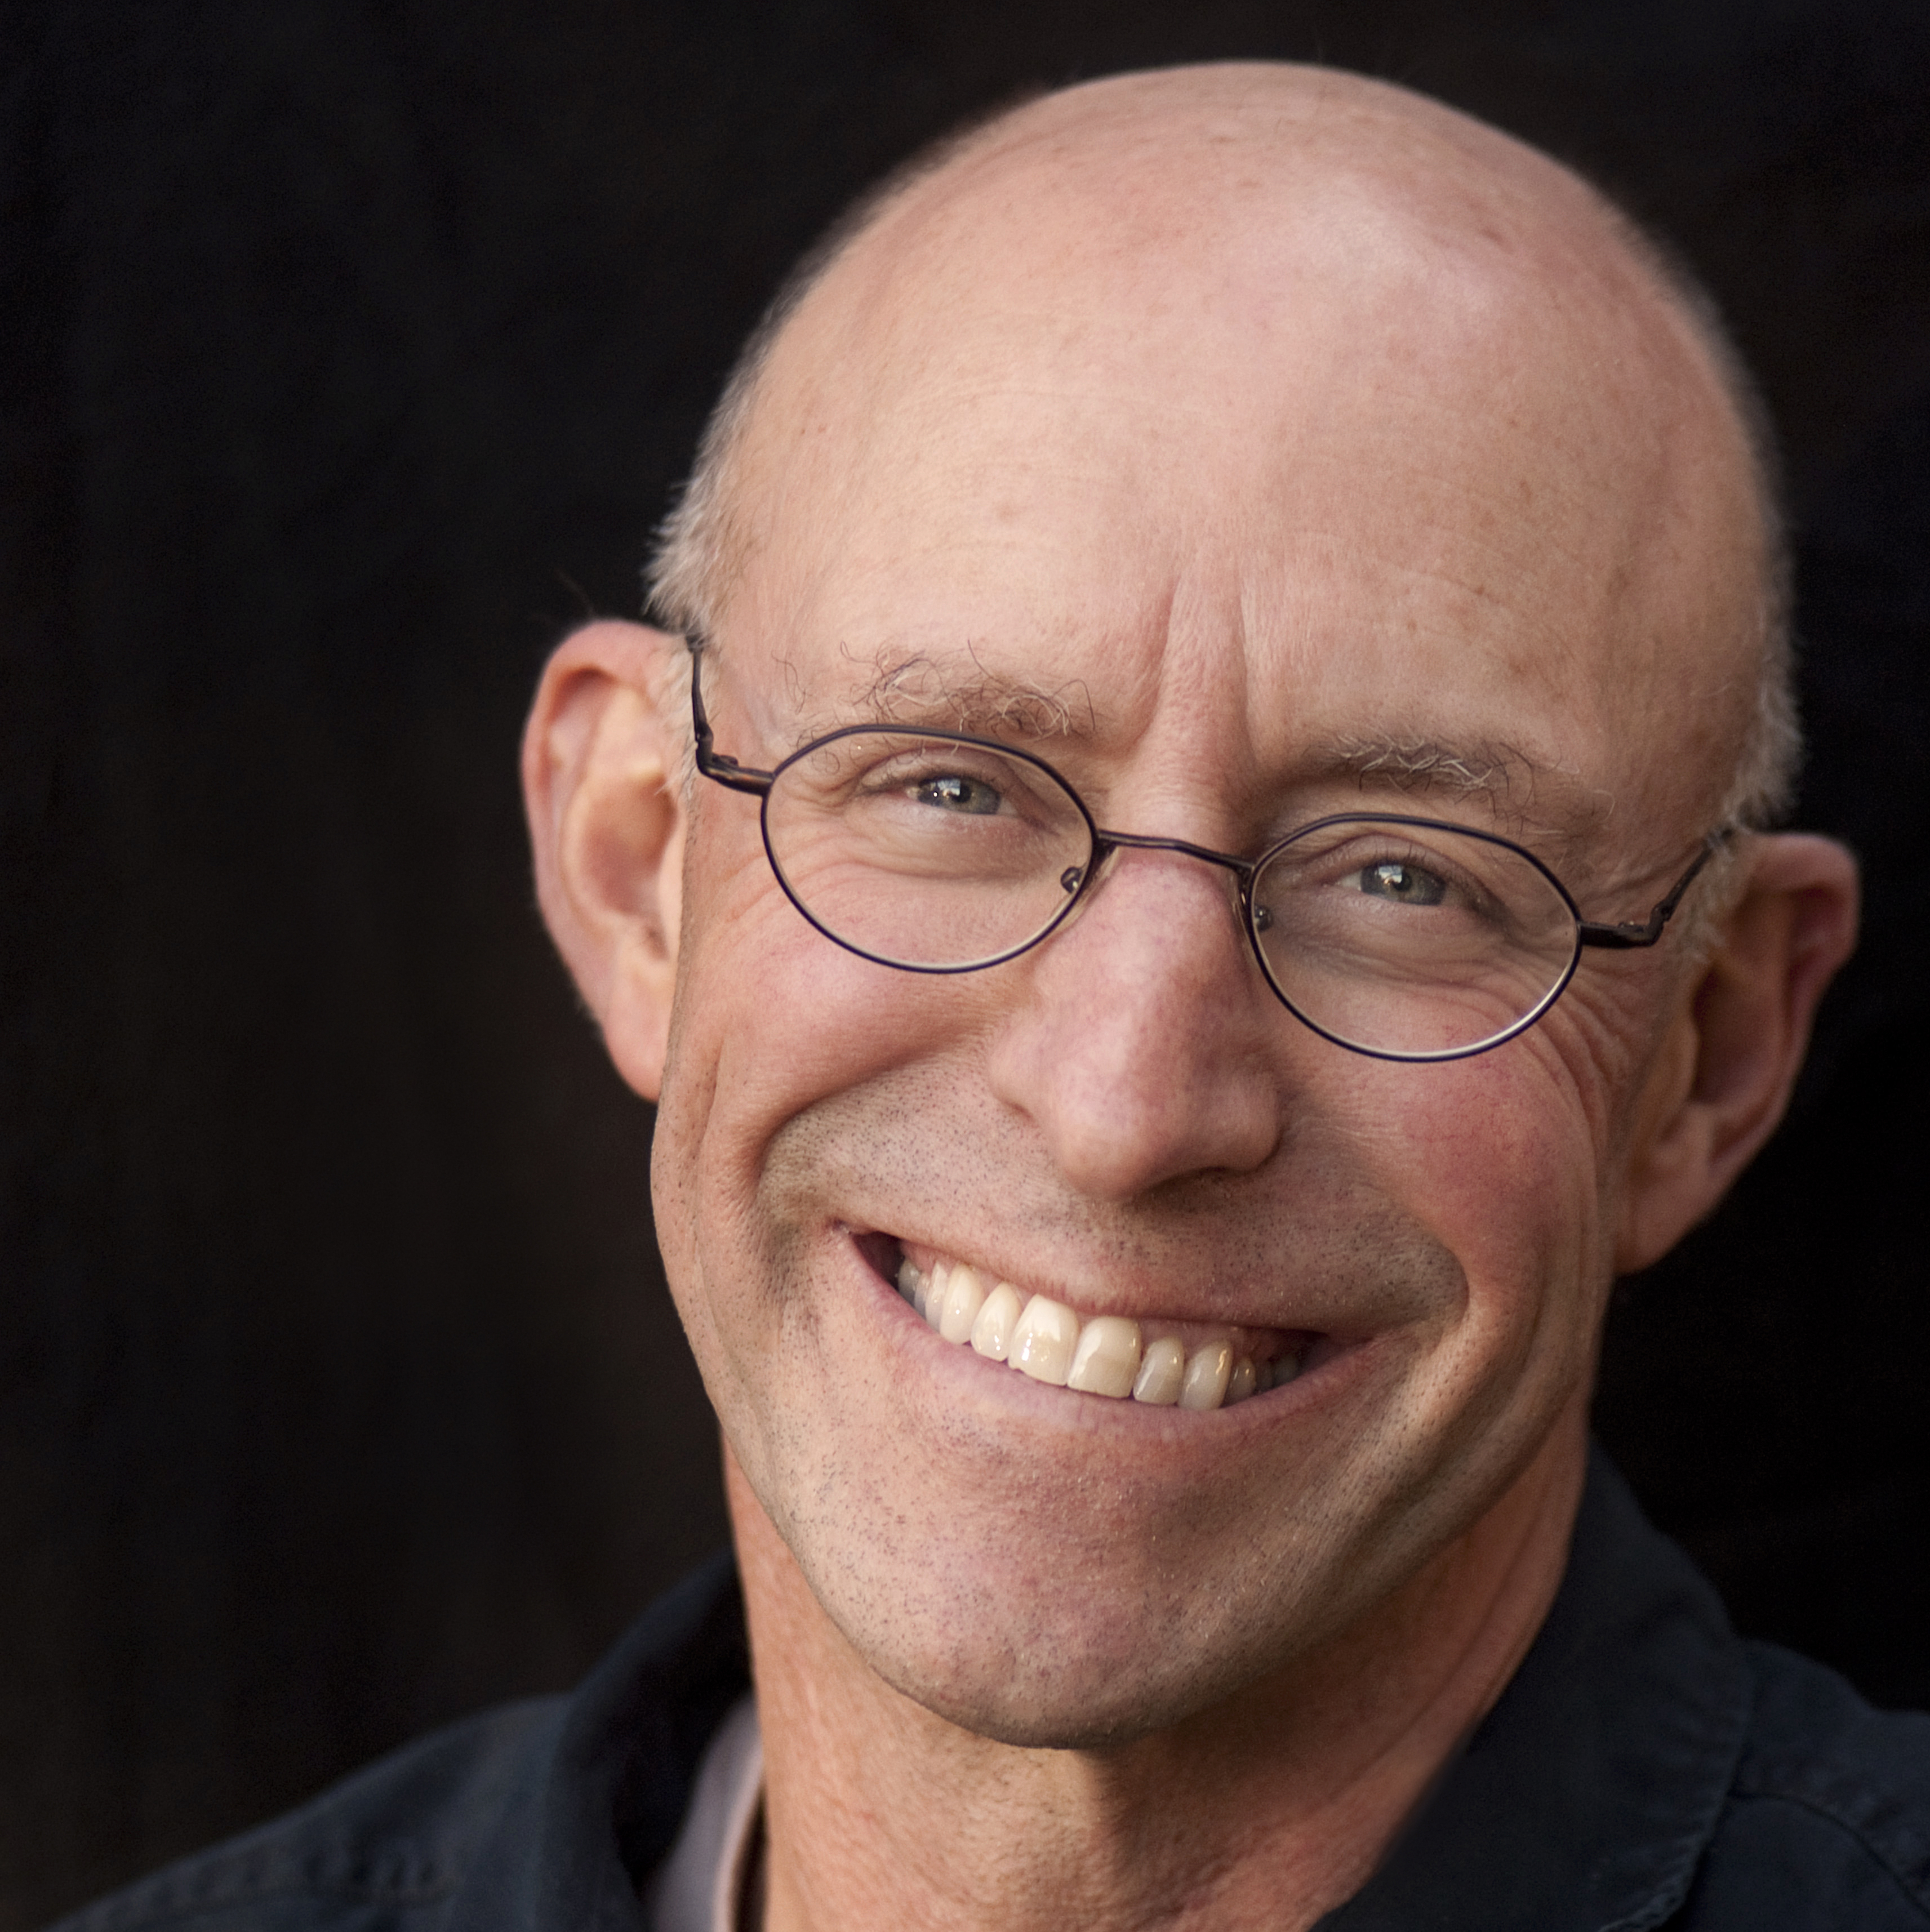 Michael Pollan is the author of five books, including The Botany of Desire, The Omnivore's Dilemma and In Defense of Food. A longtime contributing writer to The New York Times Magazine, Pollan is also the Knight Professor of Journalism at the University of California, Berkeley.